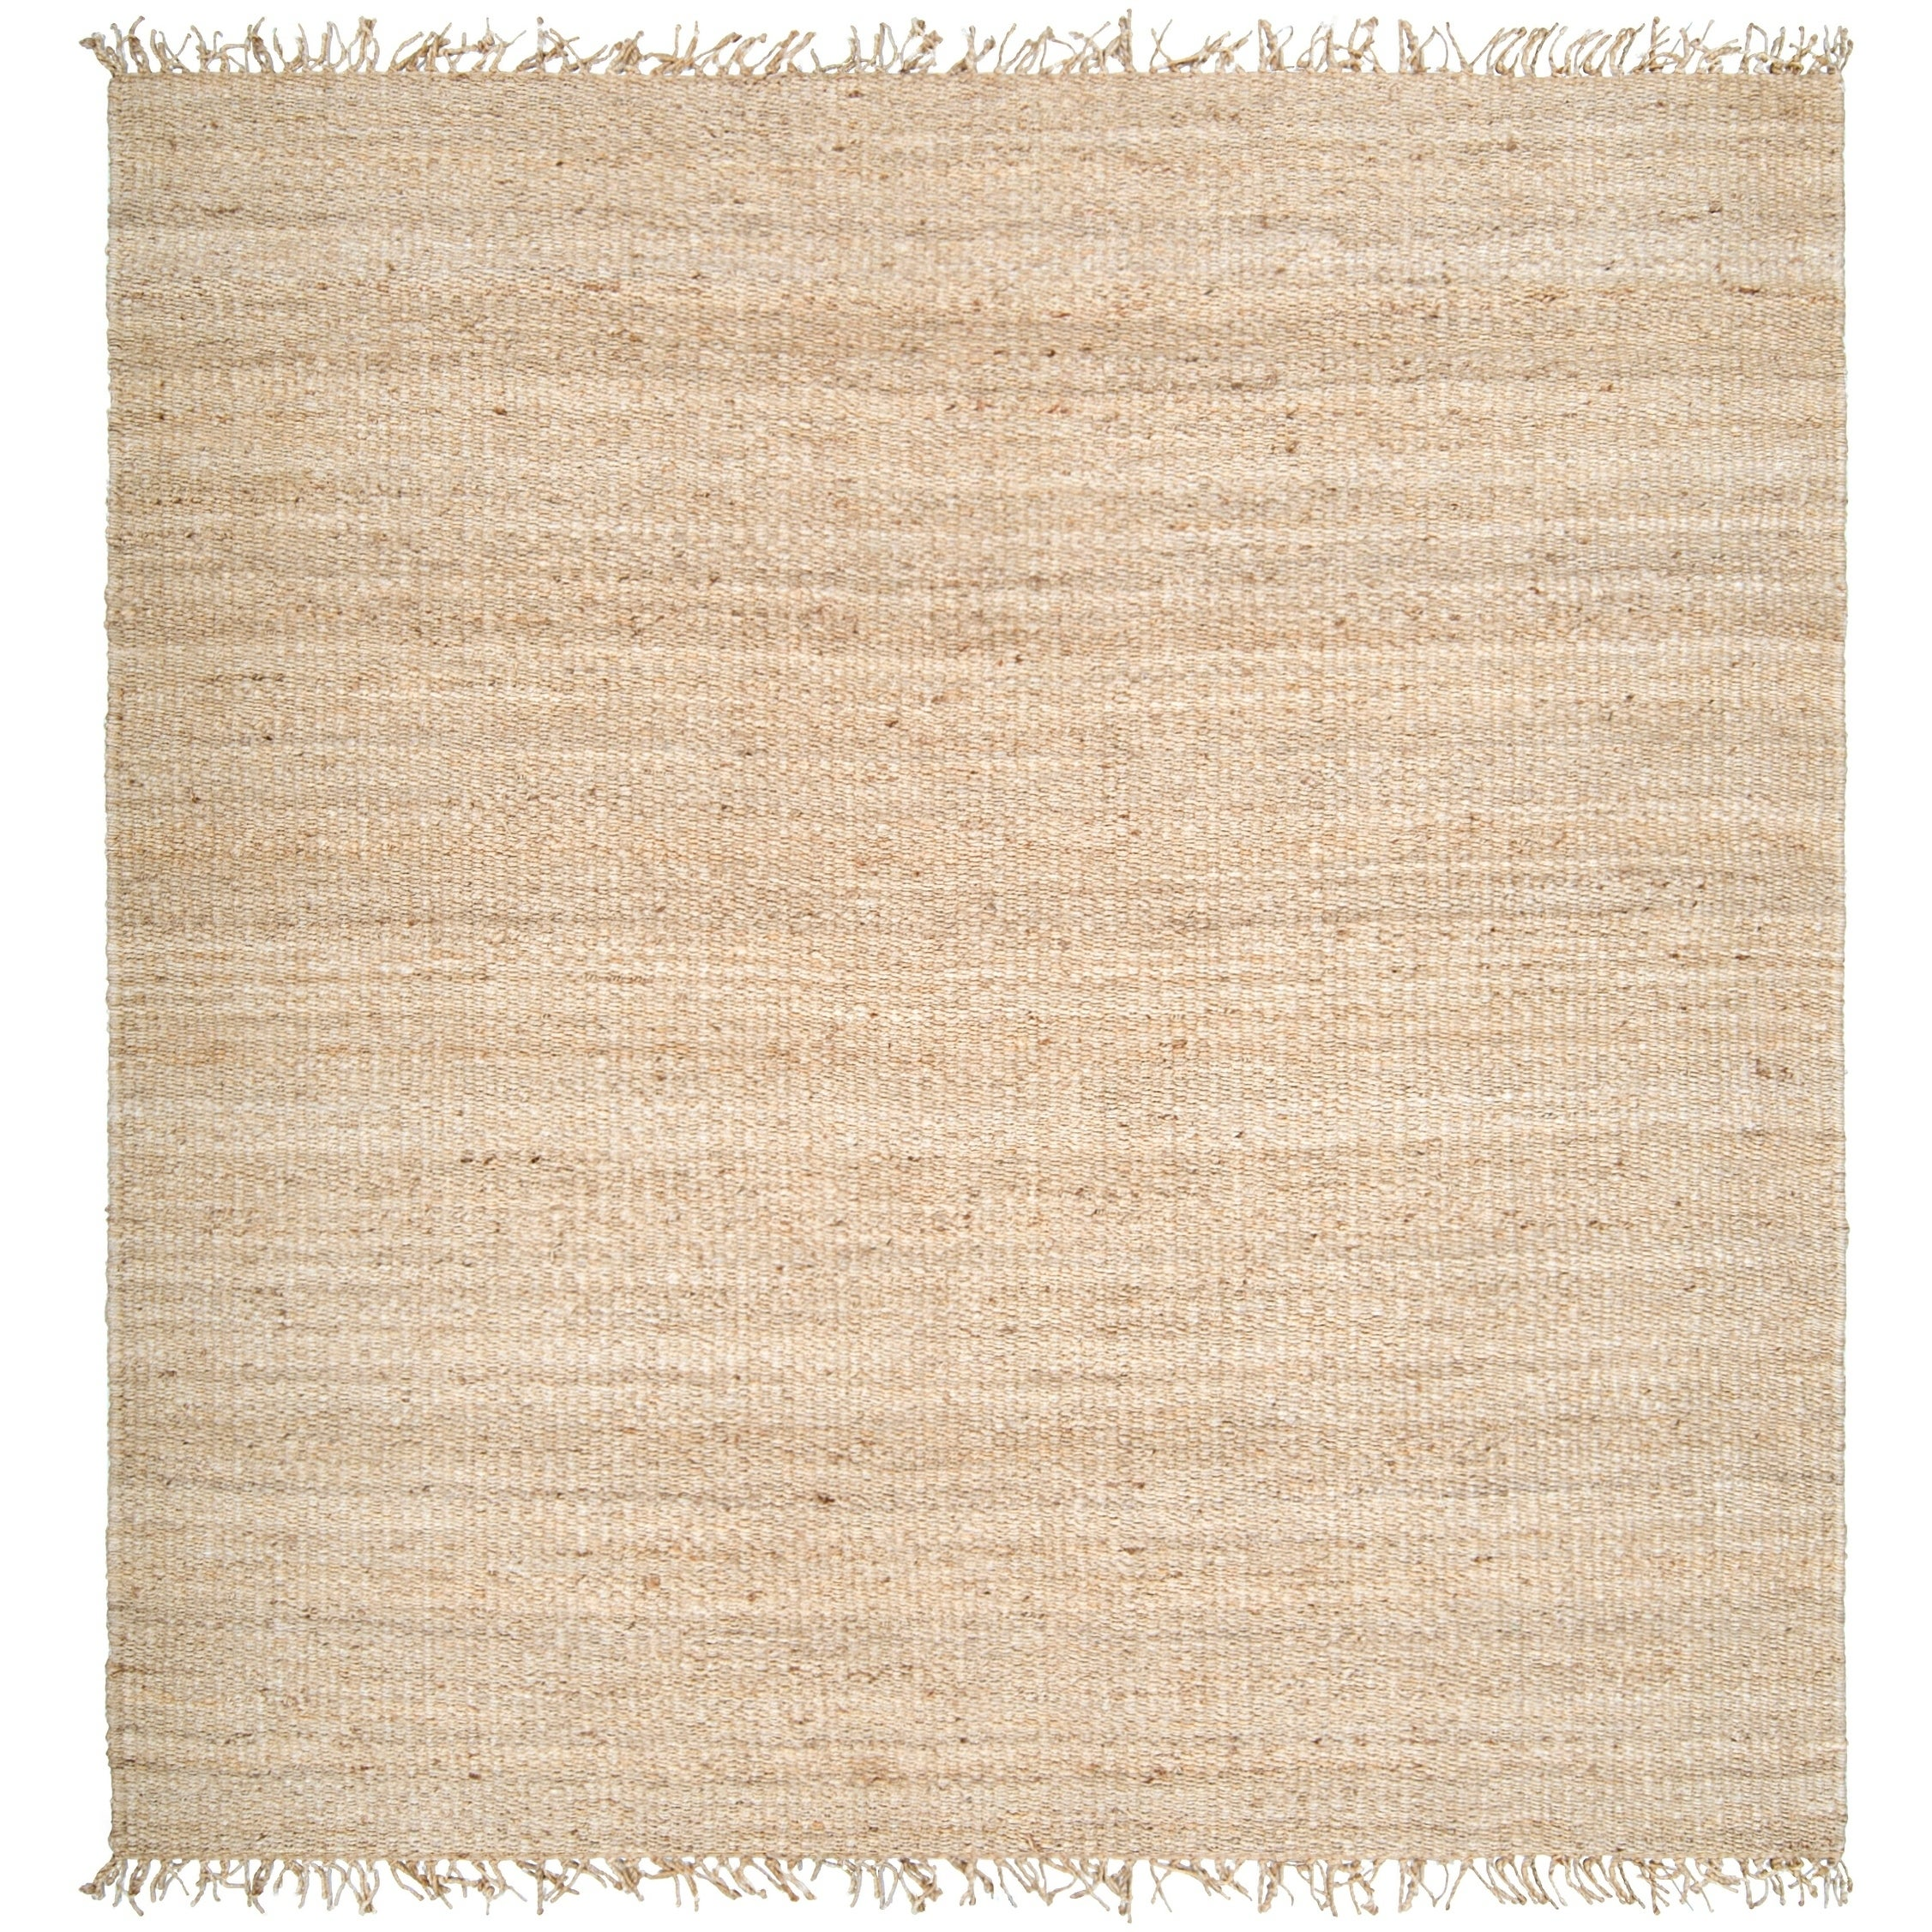 Hand Woven Jute Bleached Area Rug